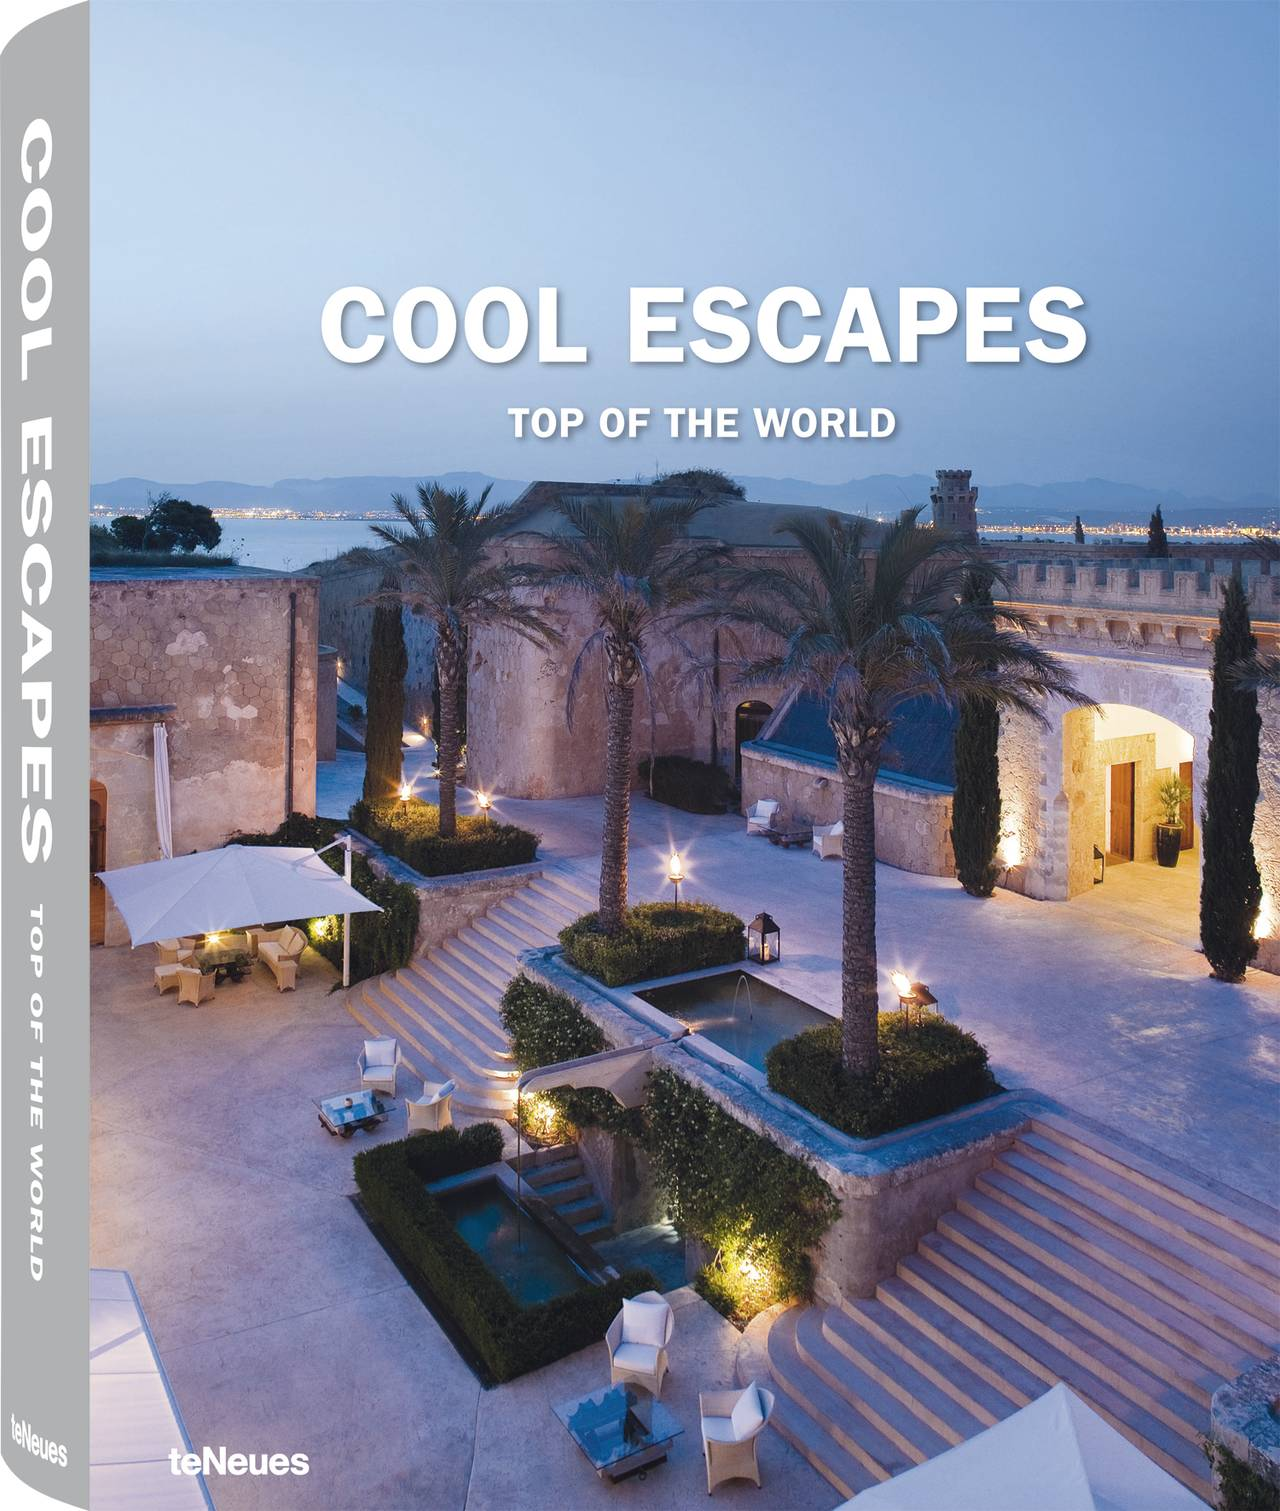 © Cool Escapes Top of the World, Cap Rocat, Mallorca, Spain, published by teNeues, www.teneues.com. Photo © Martin Nicholas Kunz